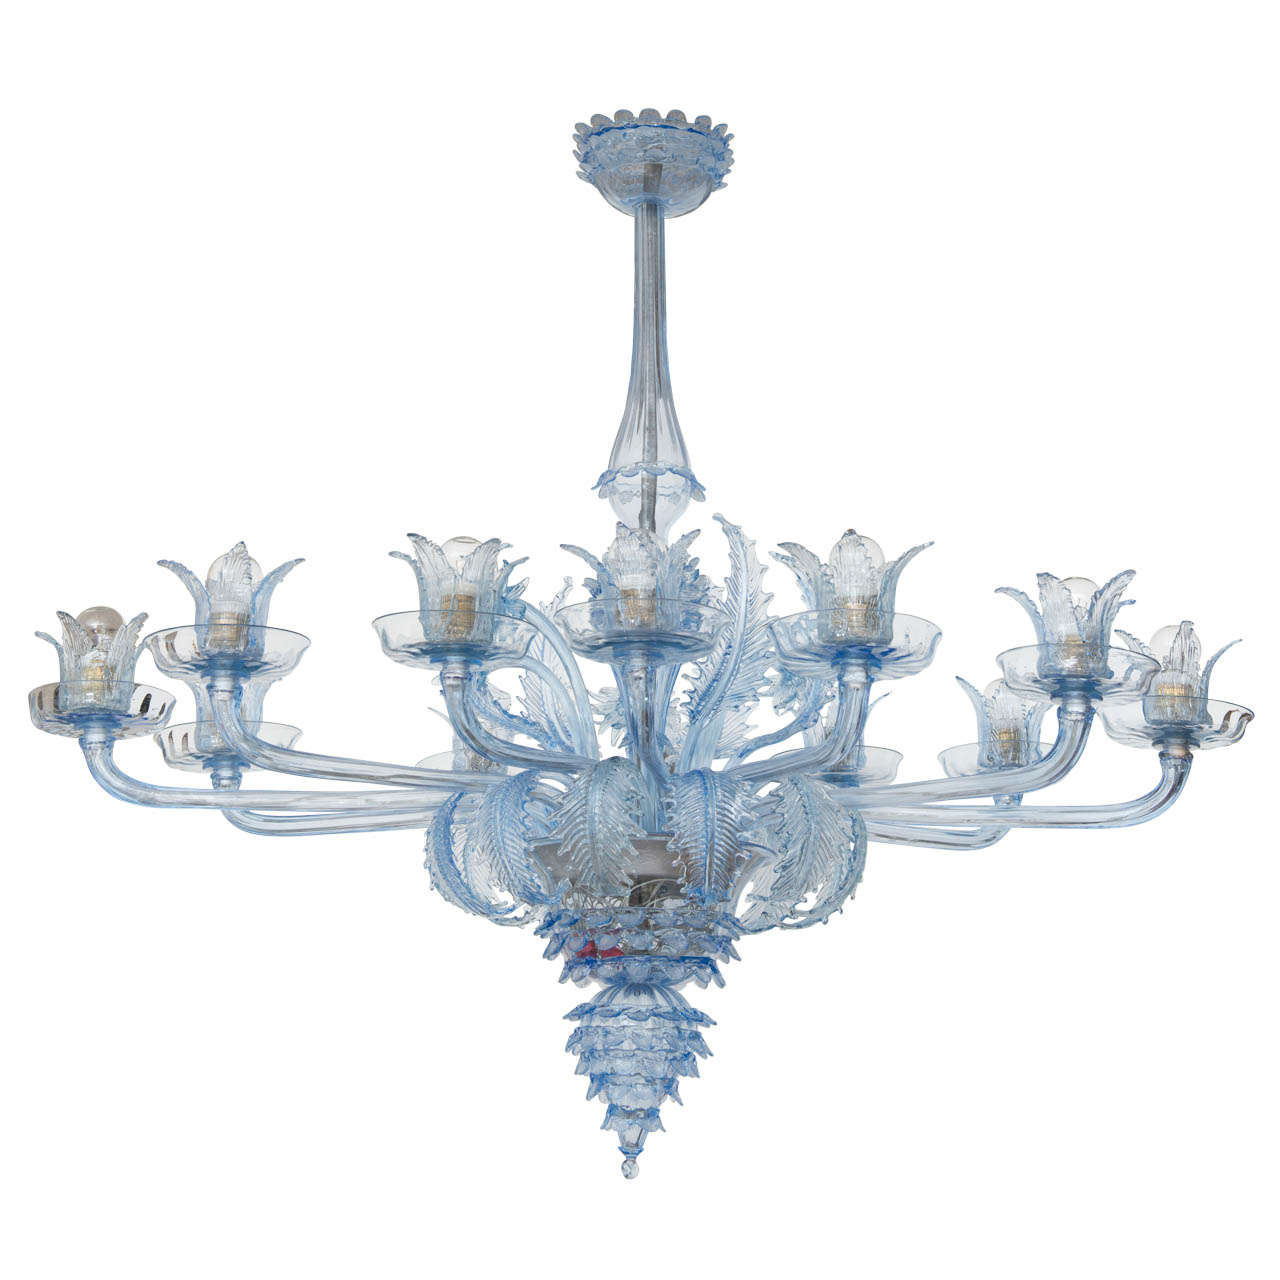 Venetian Chandelier by Barovier e Toso For Sale at 1stdibs